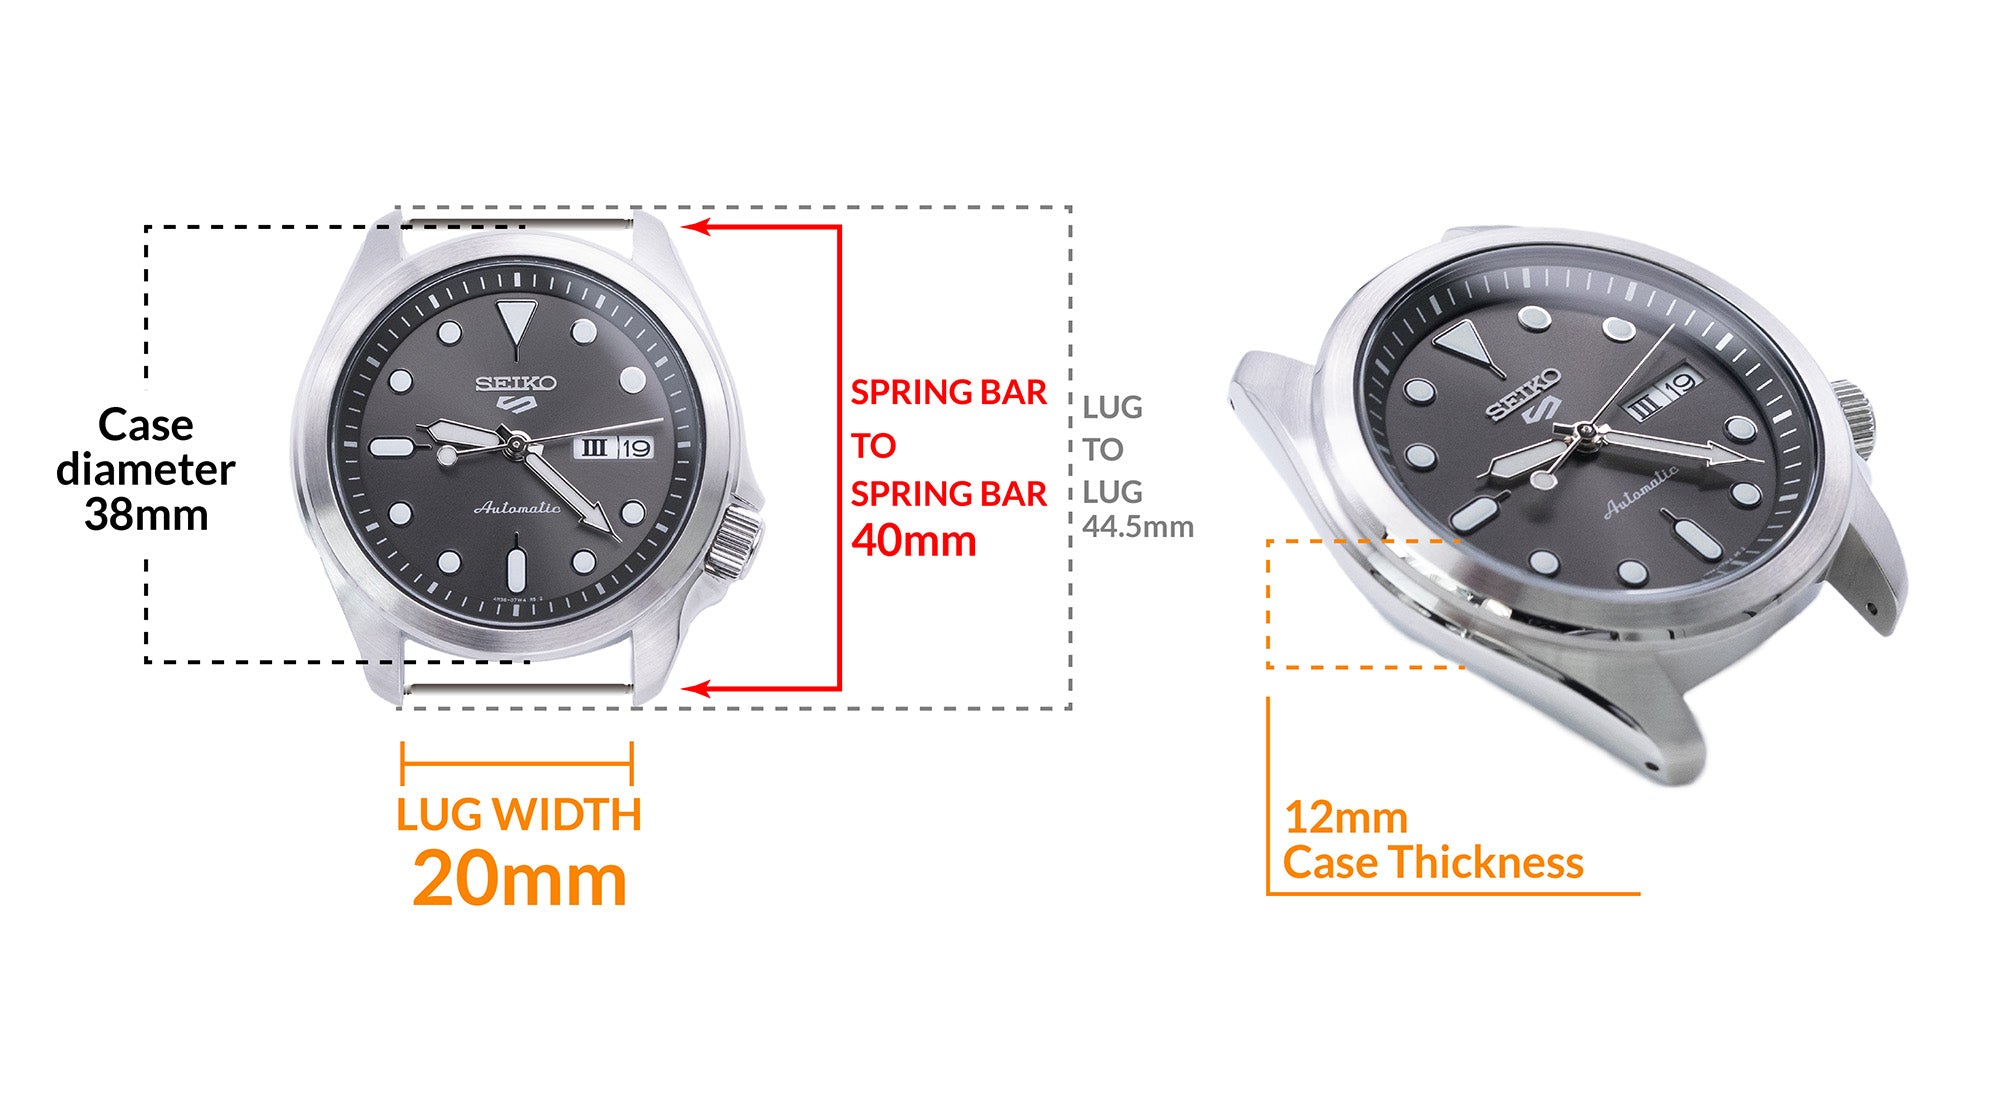 Seiko 5 40mm - Details Seiko watch size, Lug width and case dimensions